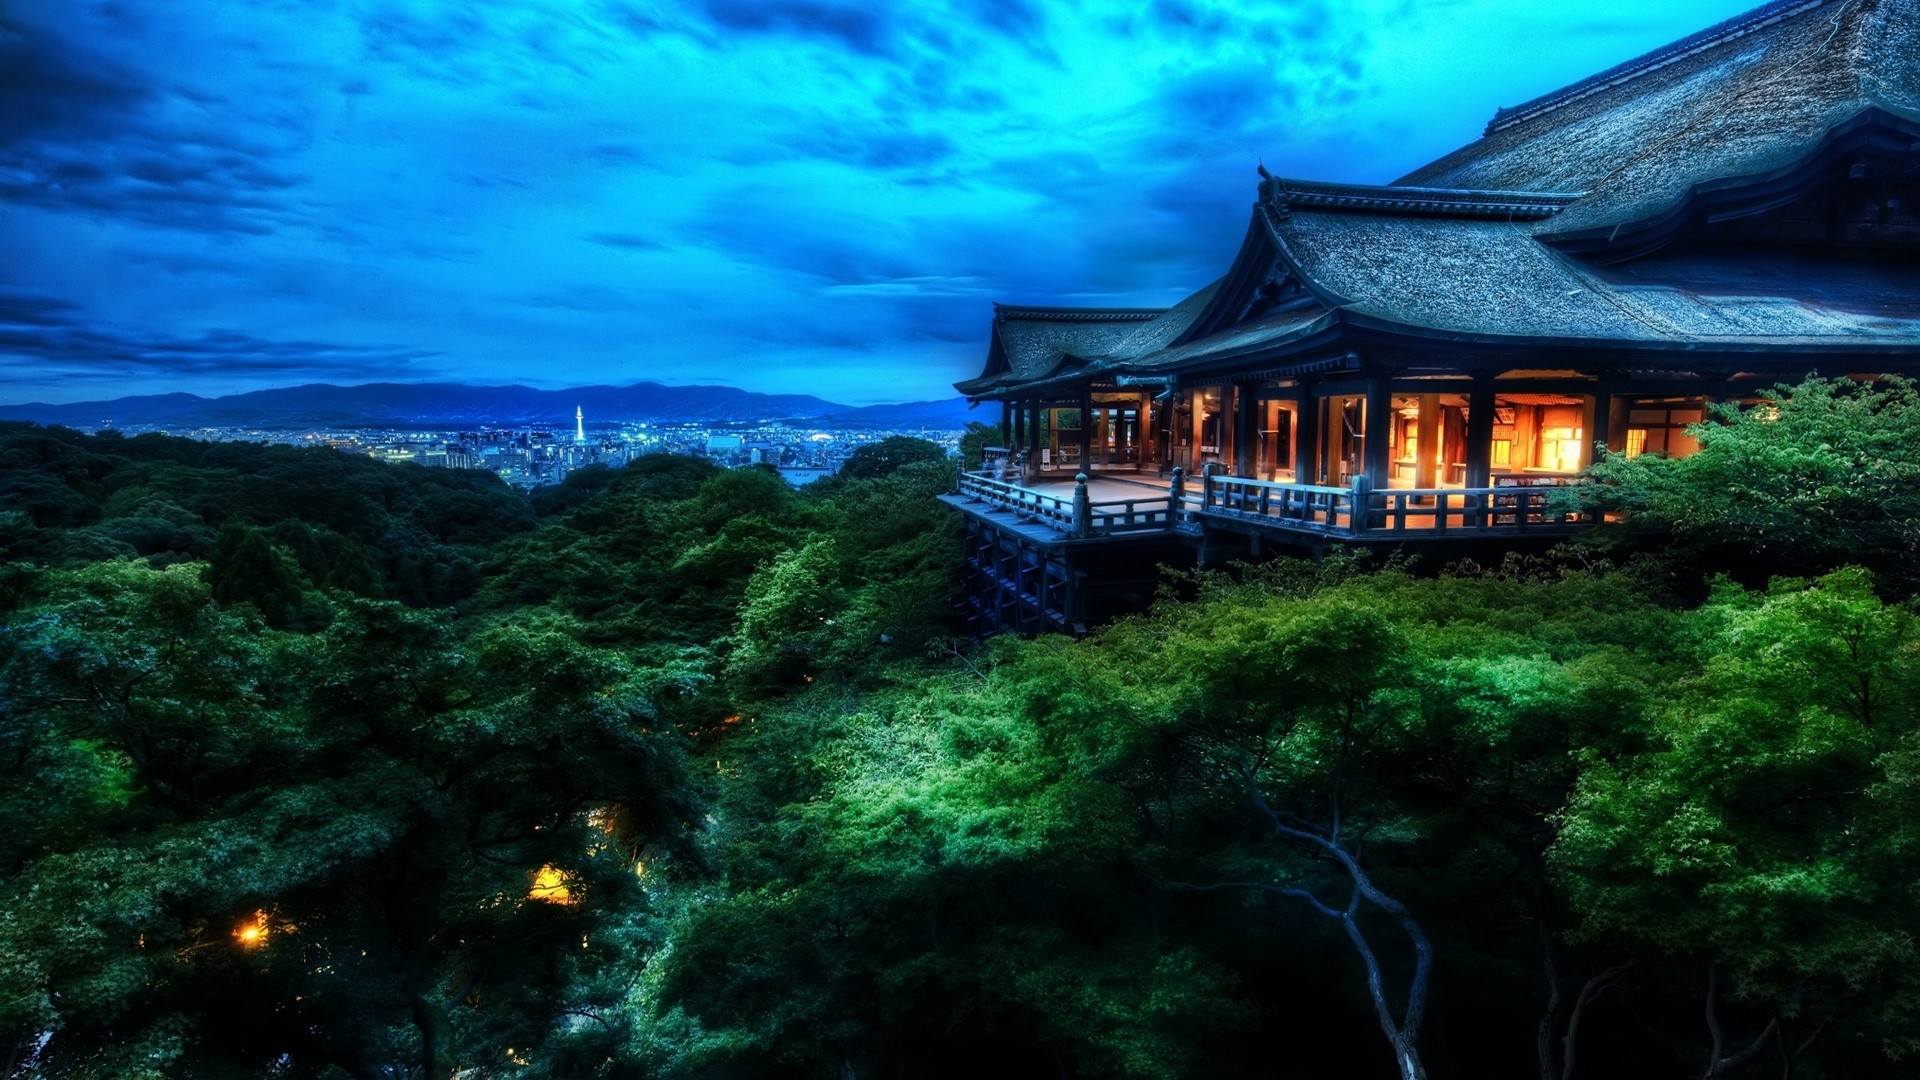 Japan Night Landscape Wallpaper HD 10770 Wallpaper WallpaperLepi 1920x1080